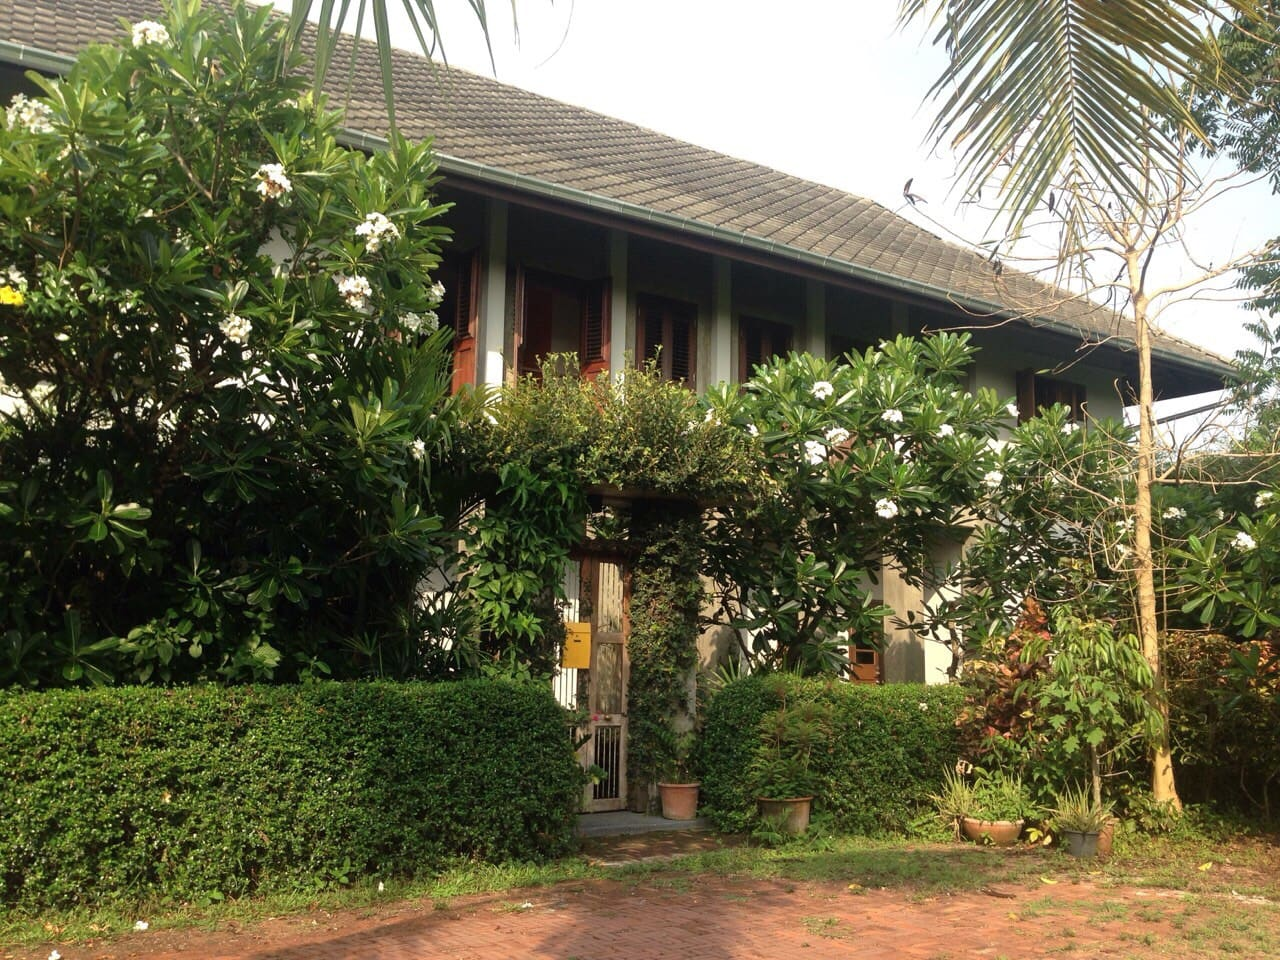 The house in Maerim, Chiangmai